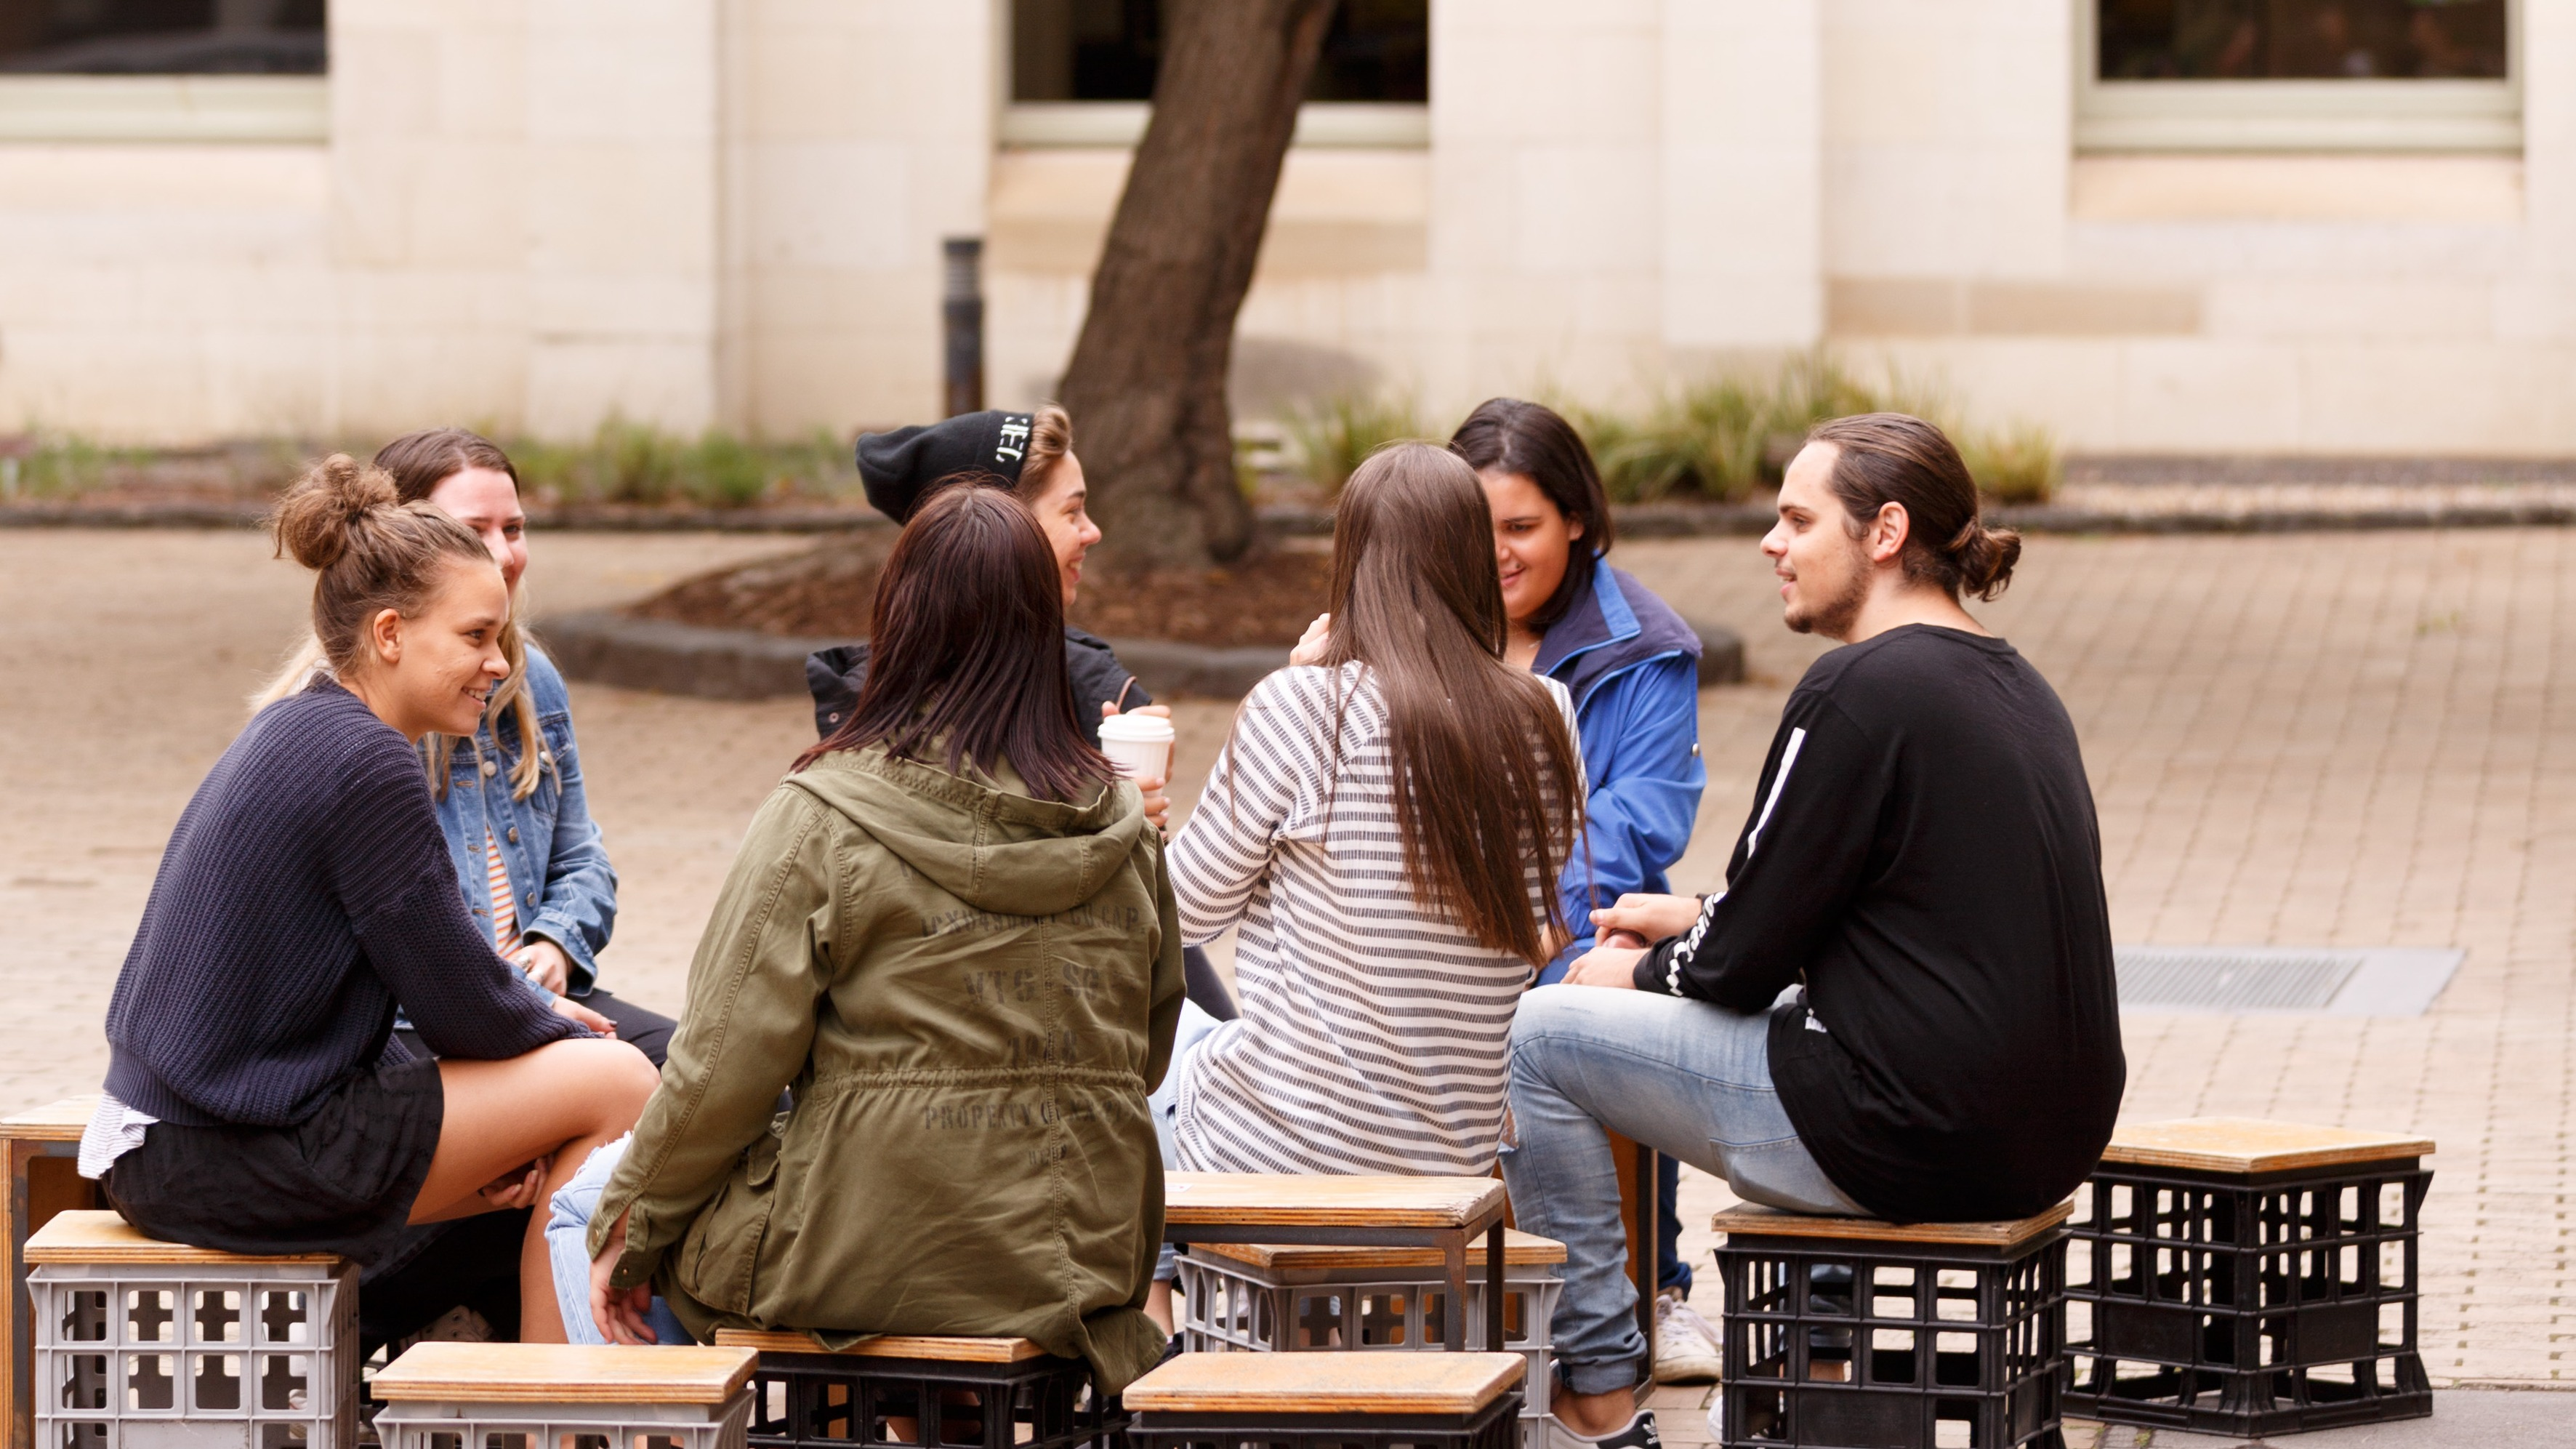 Students sitting in a circle on milk crates